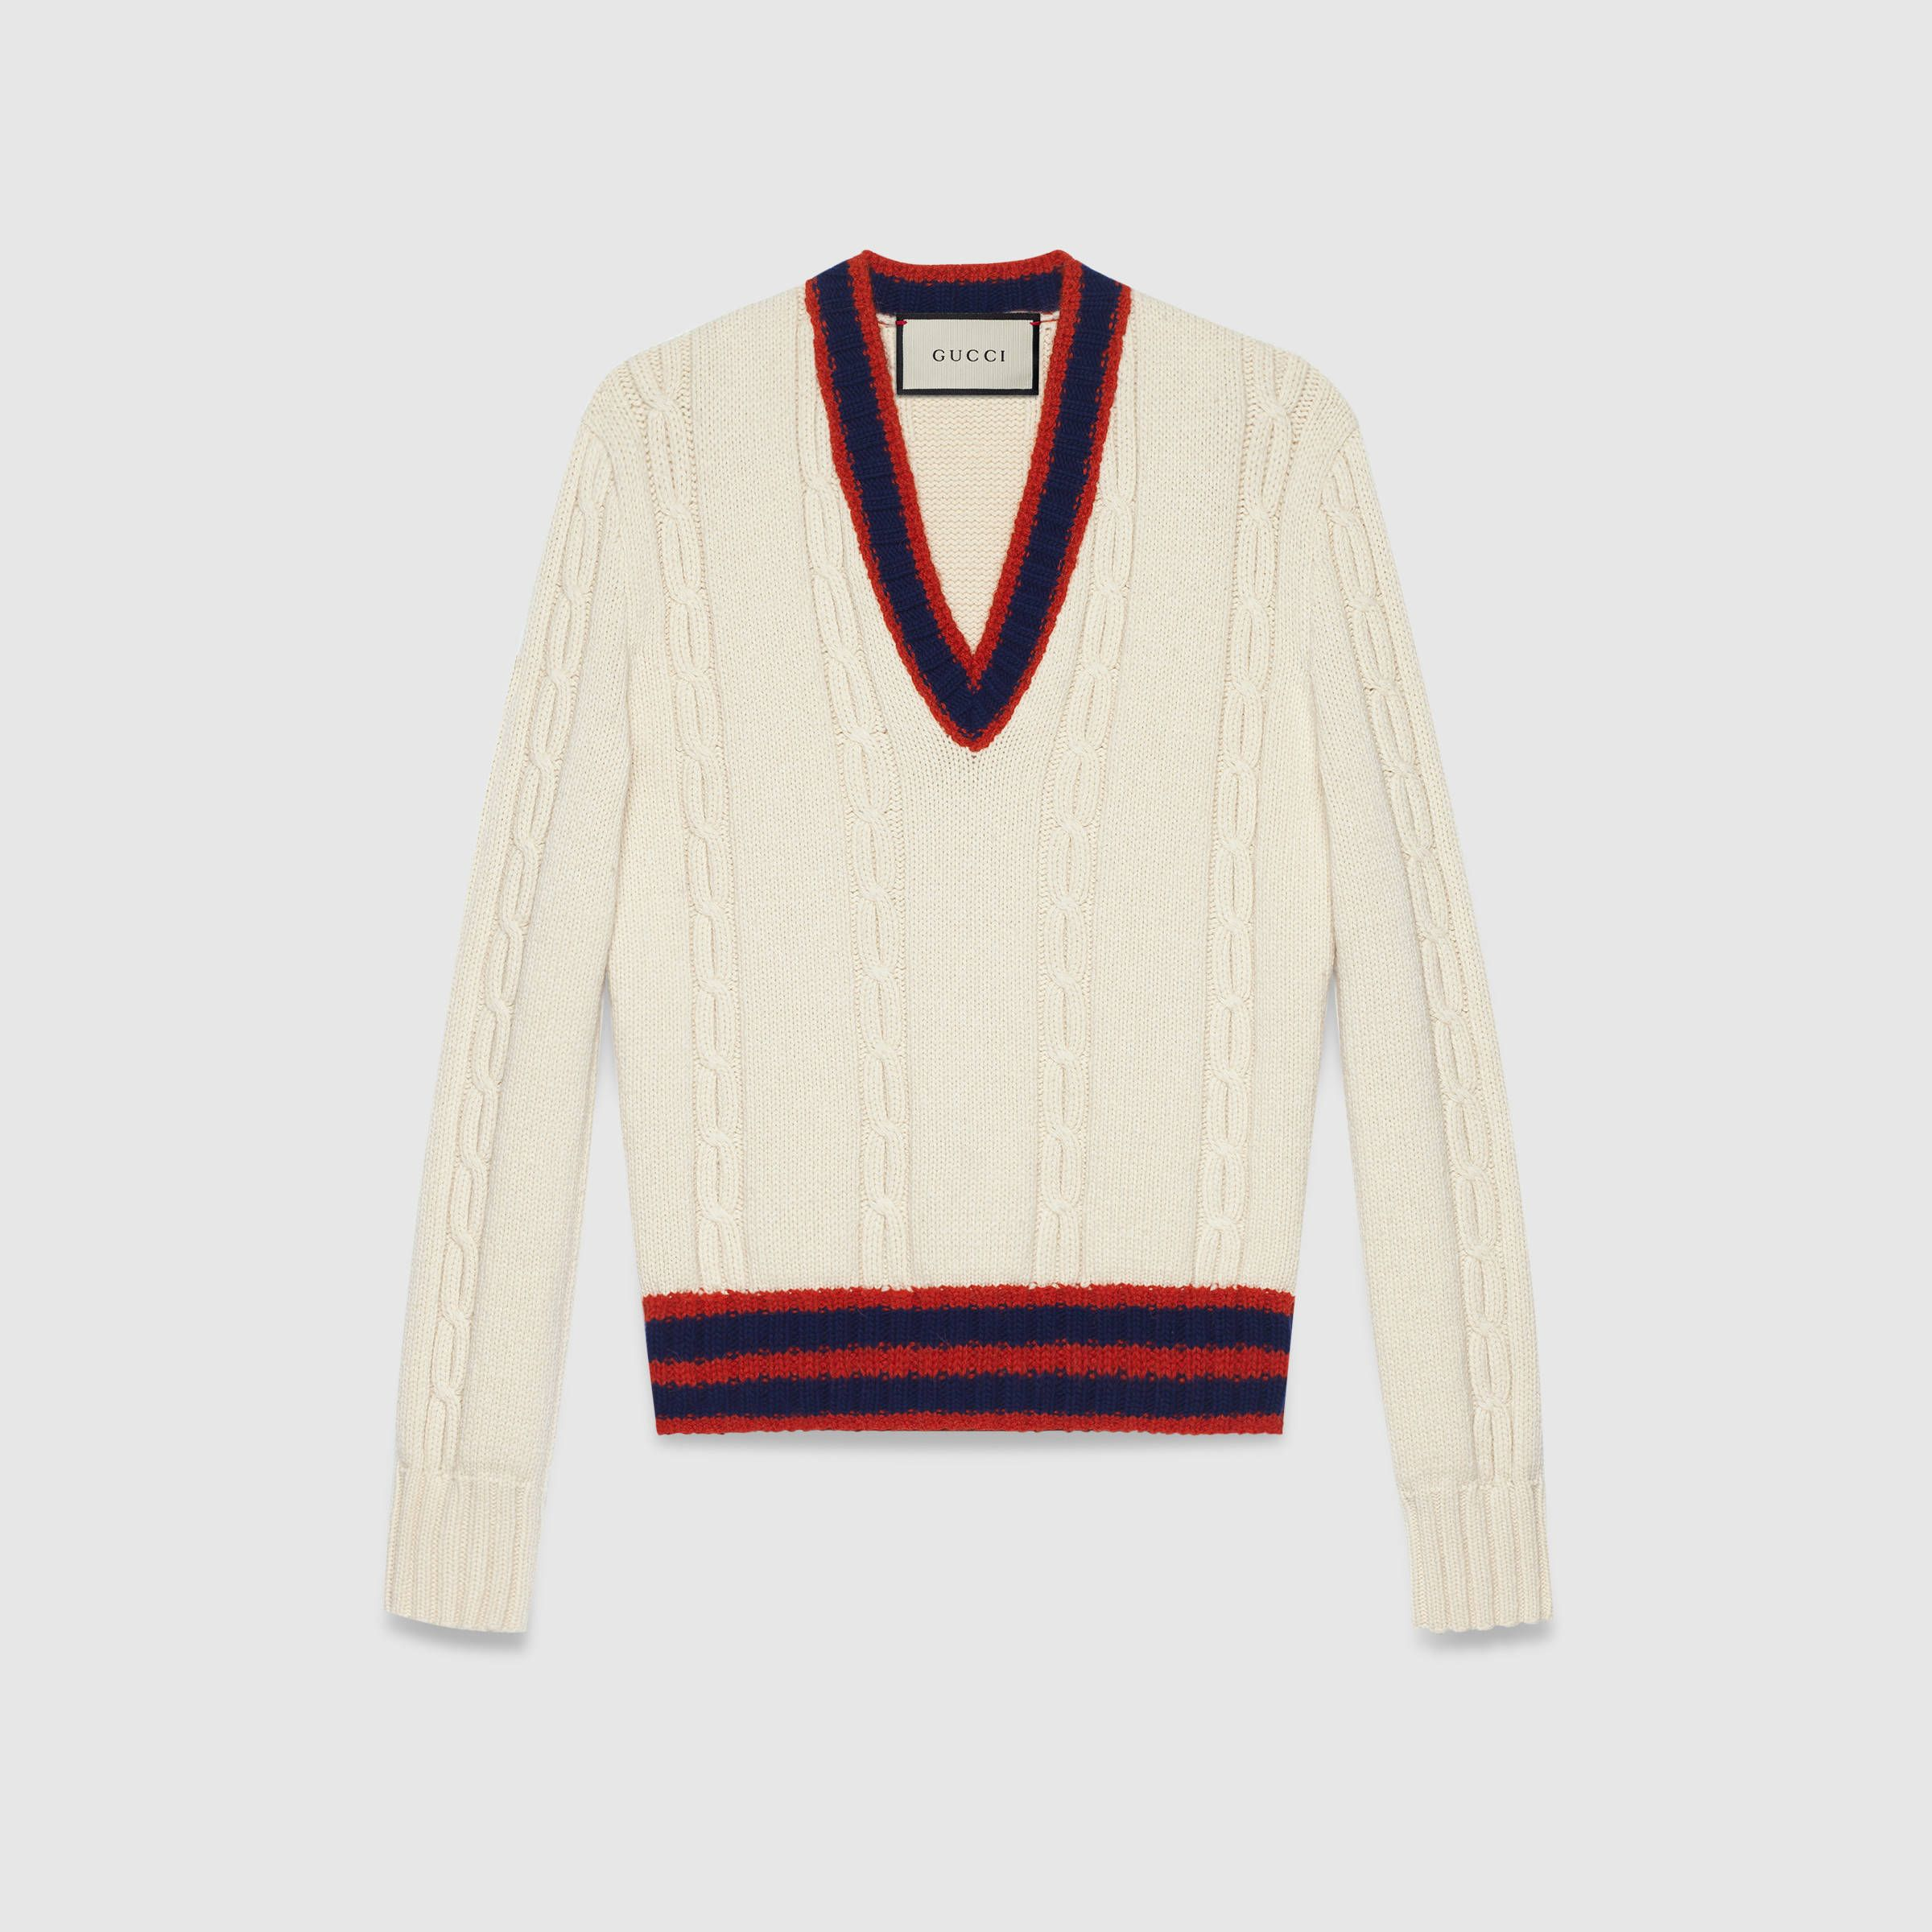 Gucci Cable-knit sweater with Web